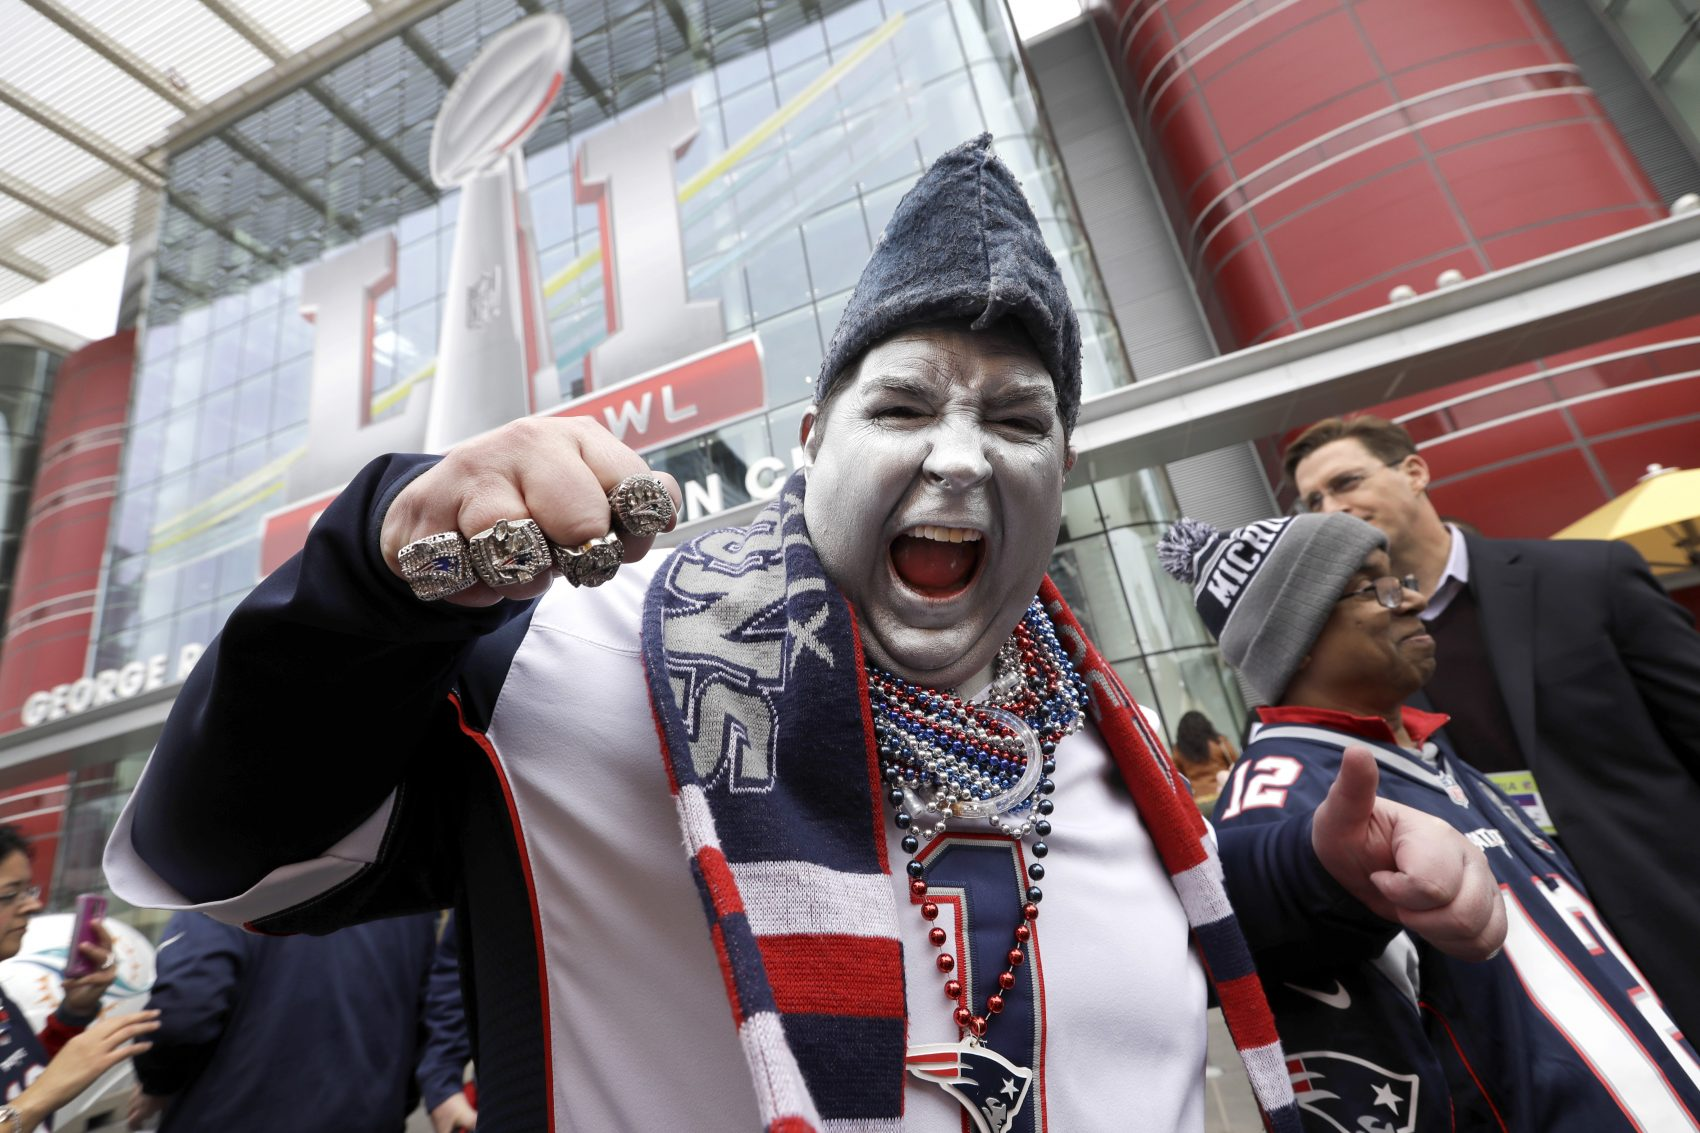 New England Patriots fan Keith Birchall cheers for his team outside the NFL Experience for Super Bowl LI. (David J. Phillip/AP)